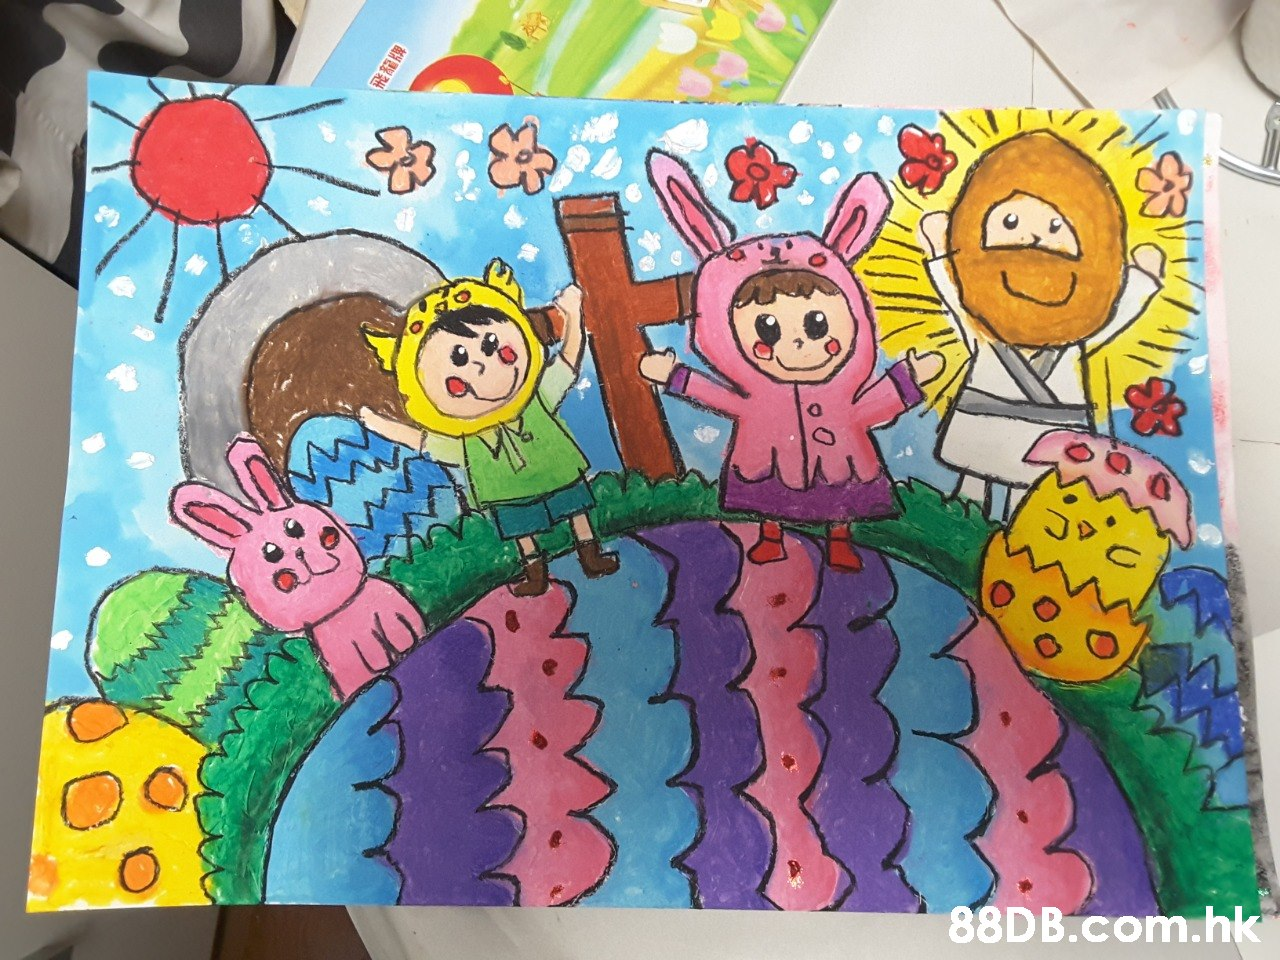 .hk  Cartoon,Child art,Art,